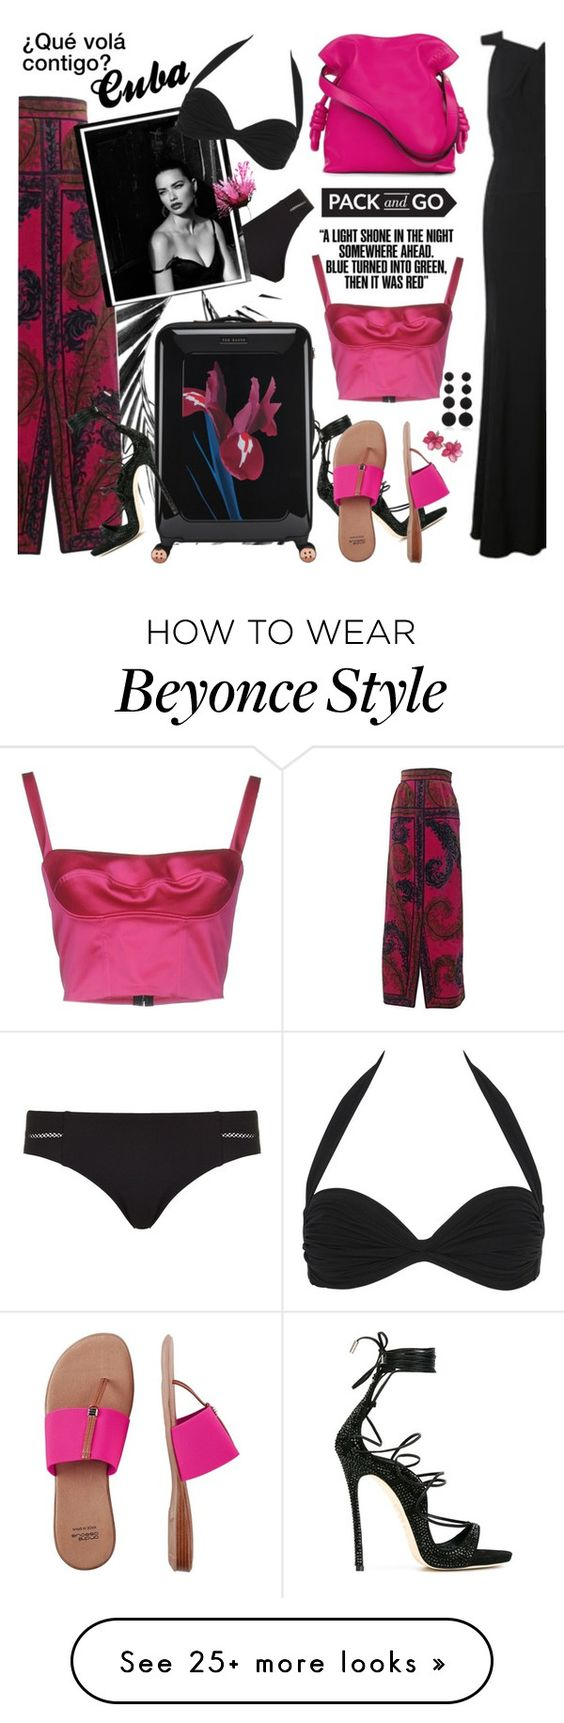 """""""¿Qué volá contigo? Cuba, What's Up?"""" by esch103 on Polyvore featuring Dsquared2, Emilio Pucci, Tory Burch, Ted Baker, Thakoon Addition, Loewe, André Assous, Norma Kamali, Rebecca de Ravenel and Packandgo"""